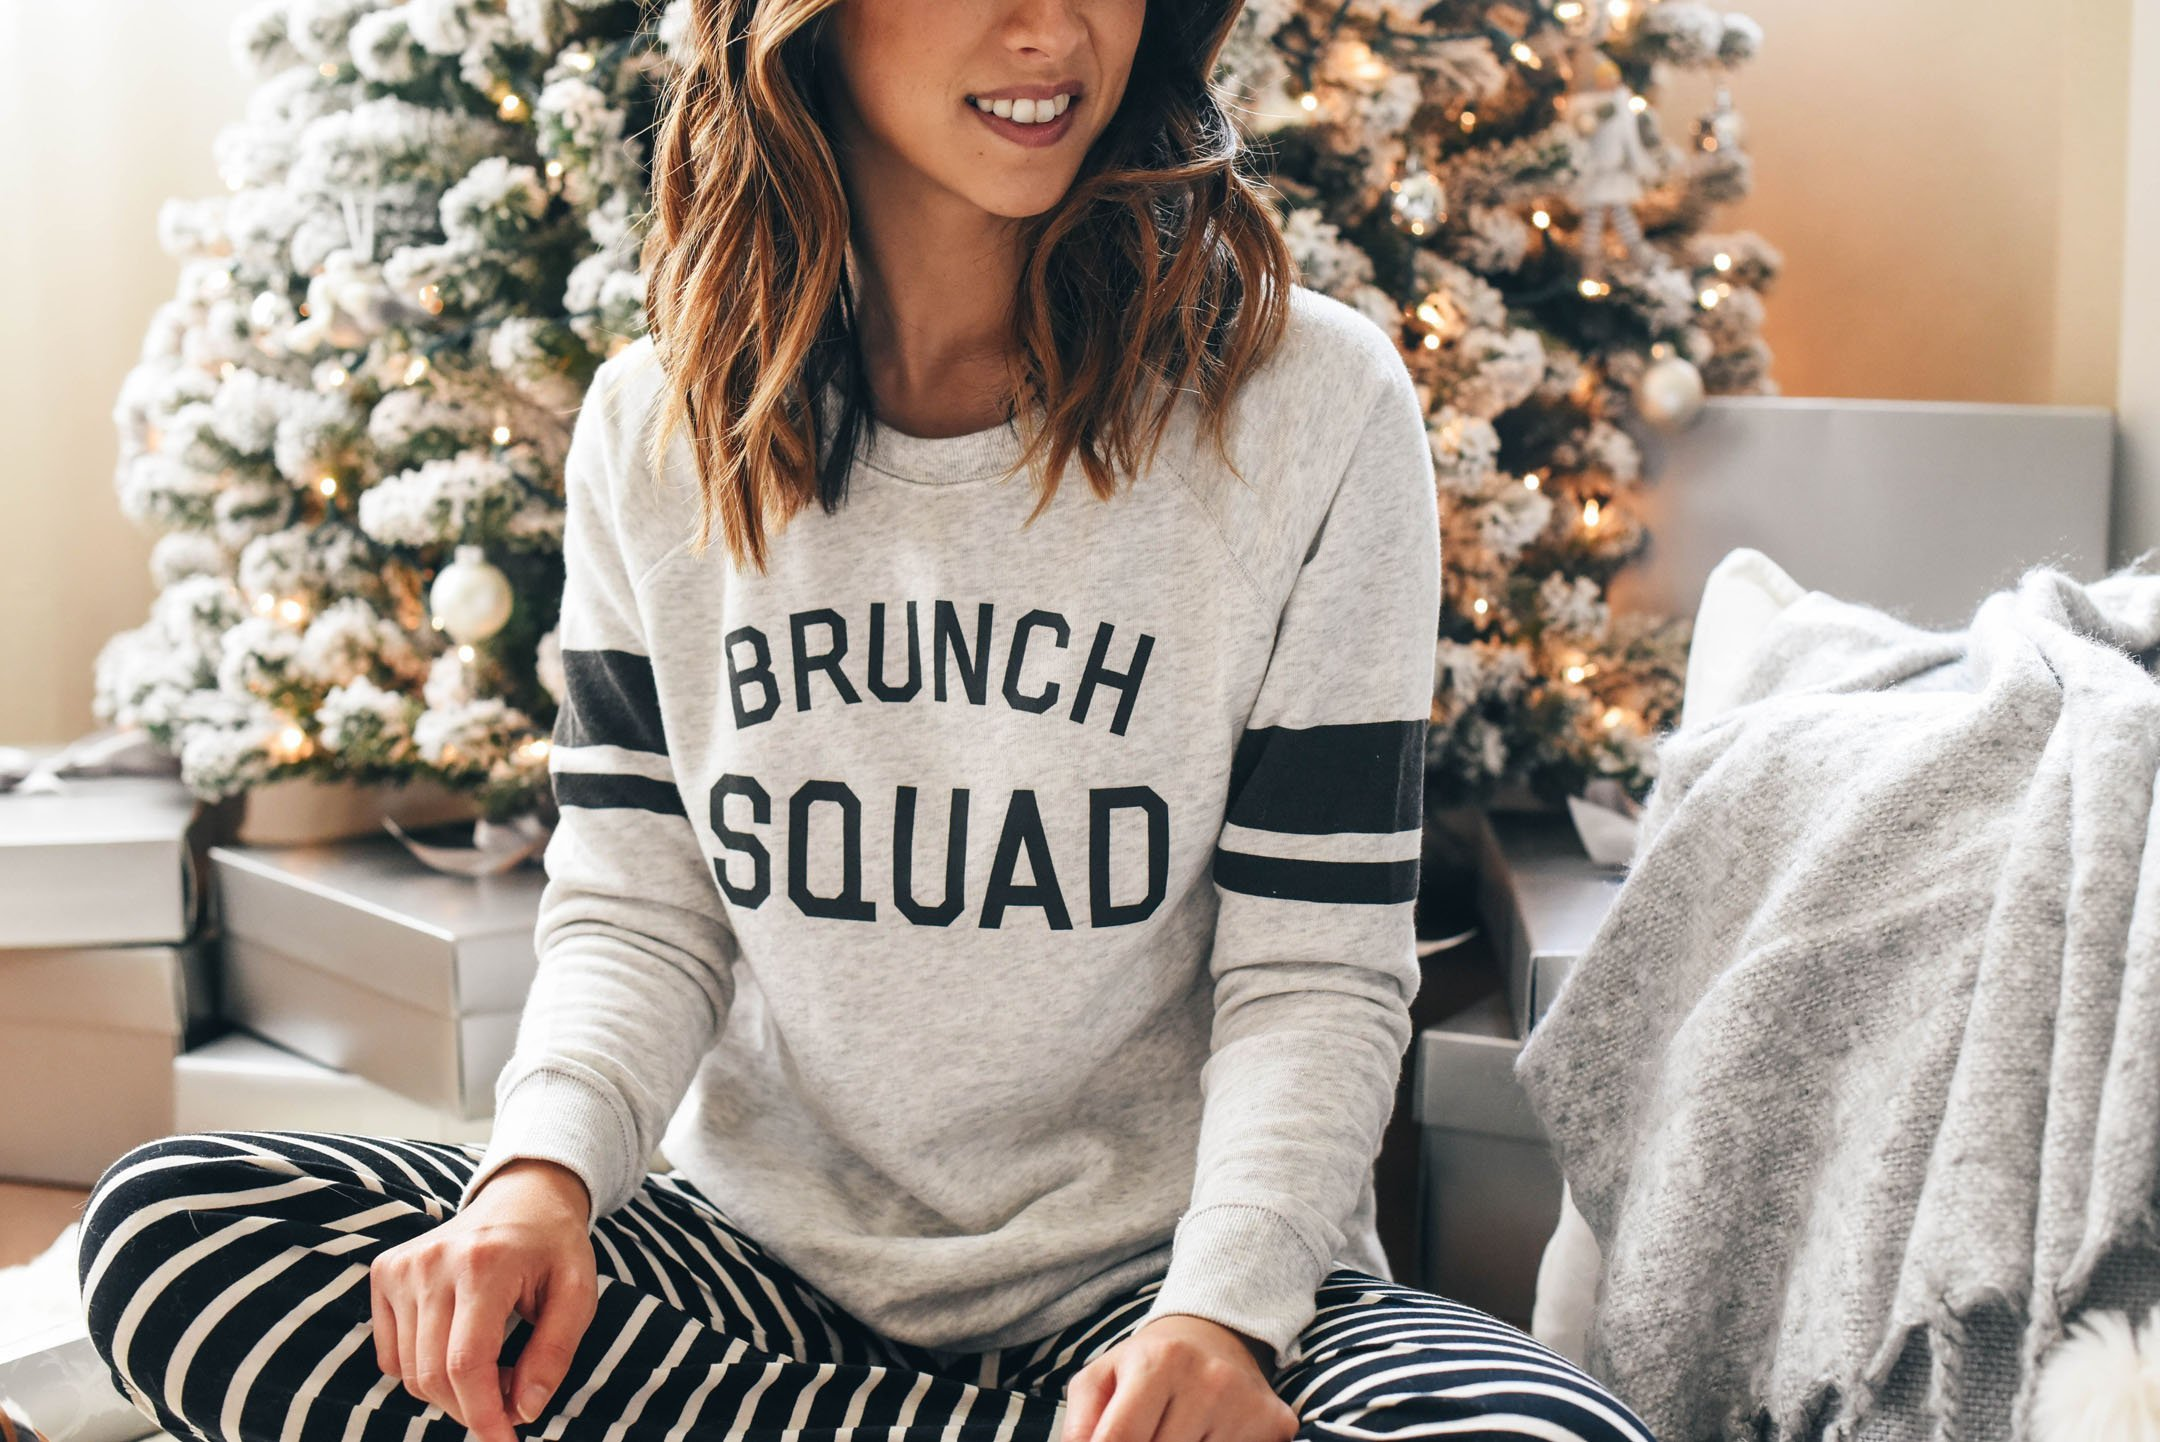 crystalin-marie-wearing-old-navy-brunch-squad-sweatshirt